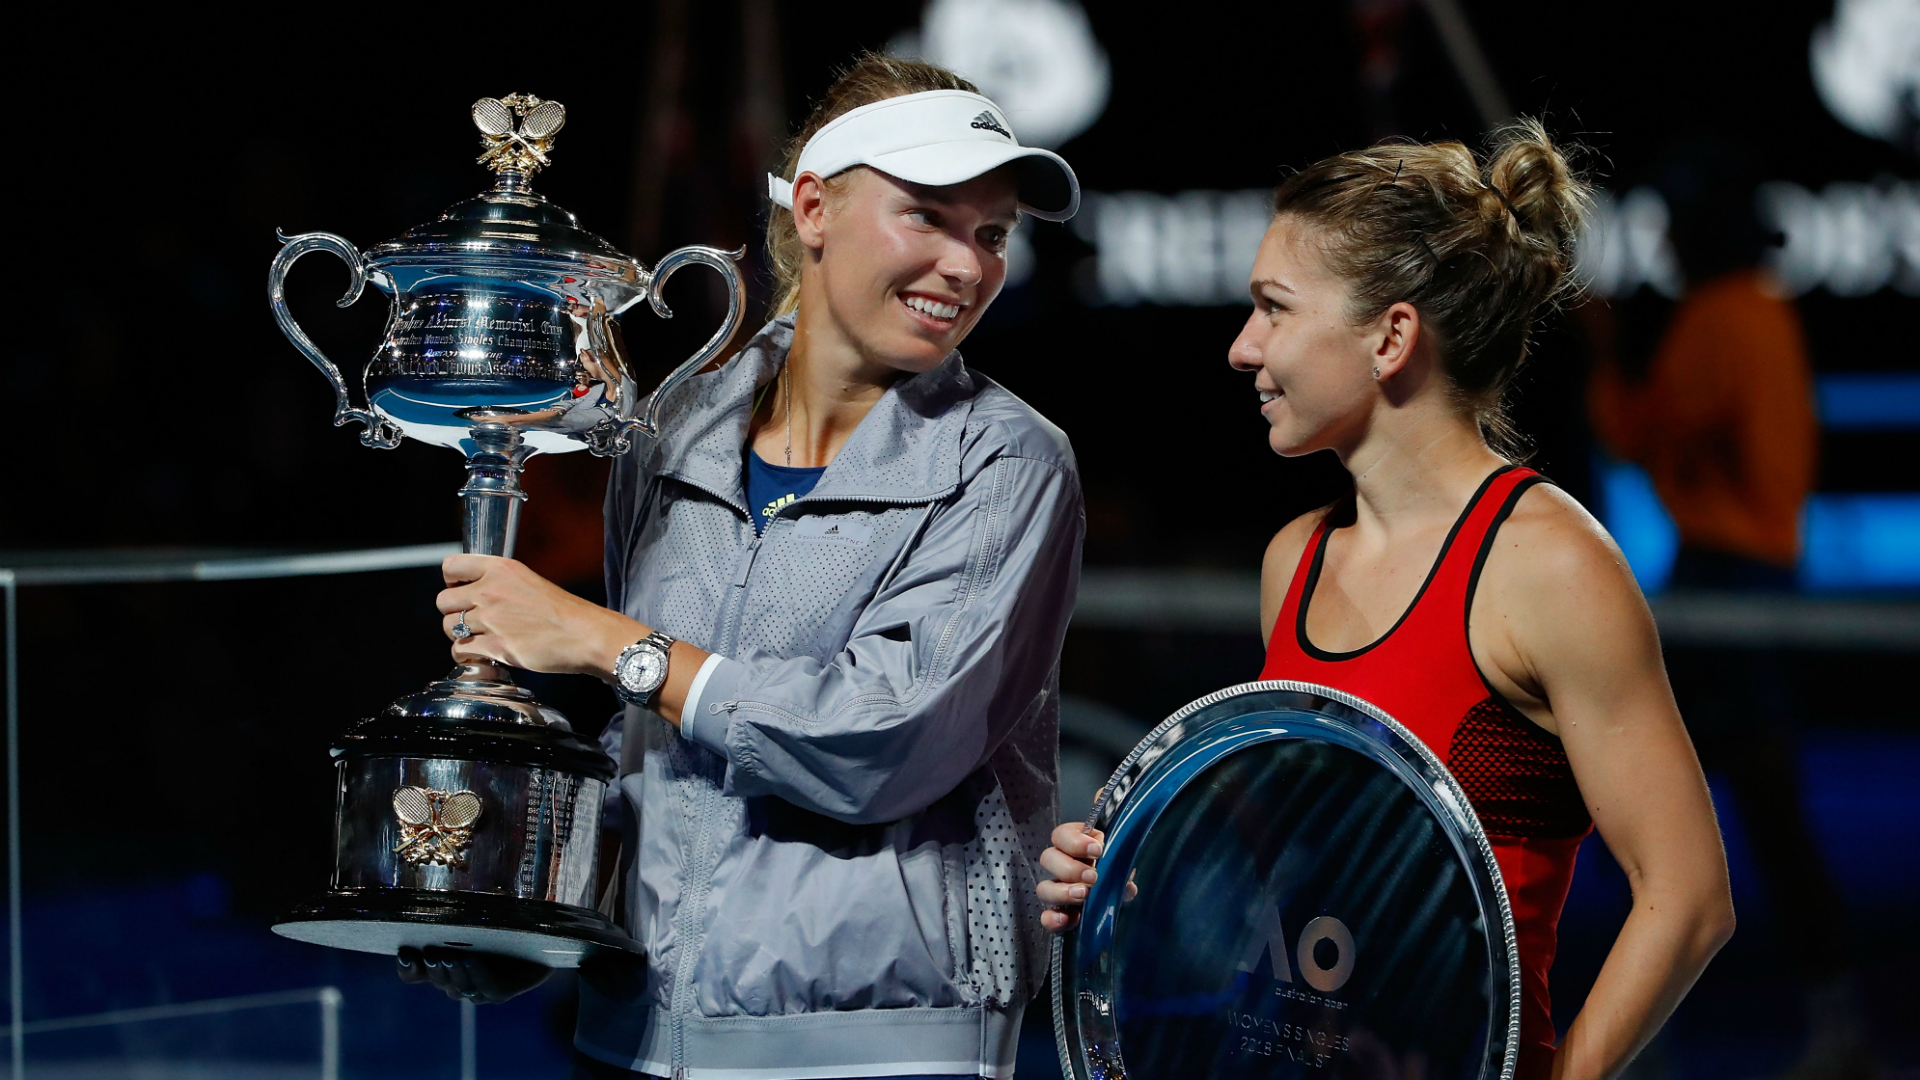 Australian Open 2019: The best Opta Facts as Wozniacki aims to join elite cast